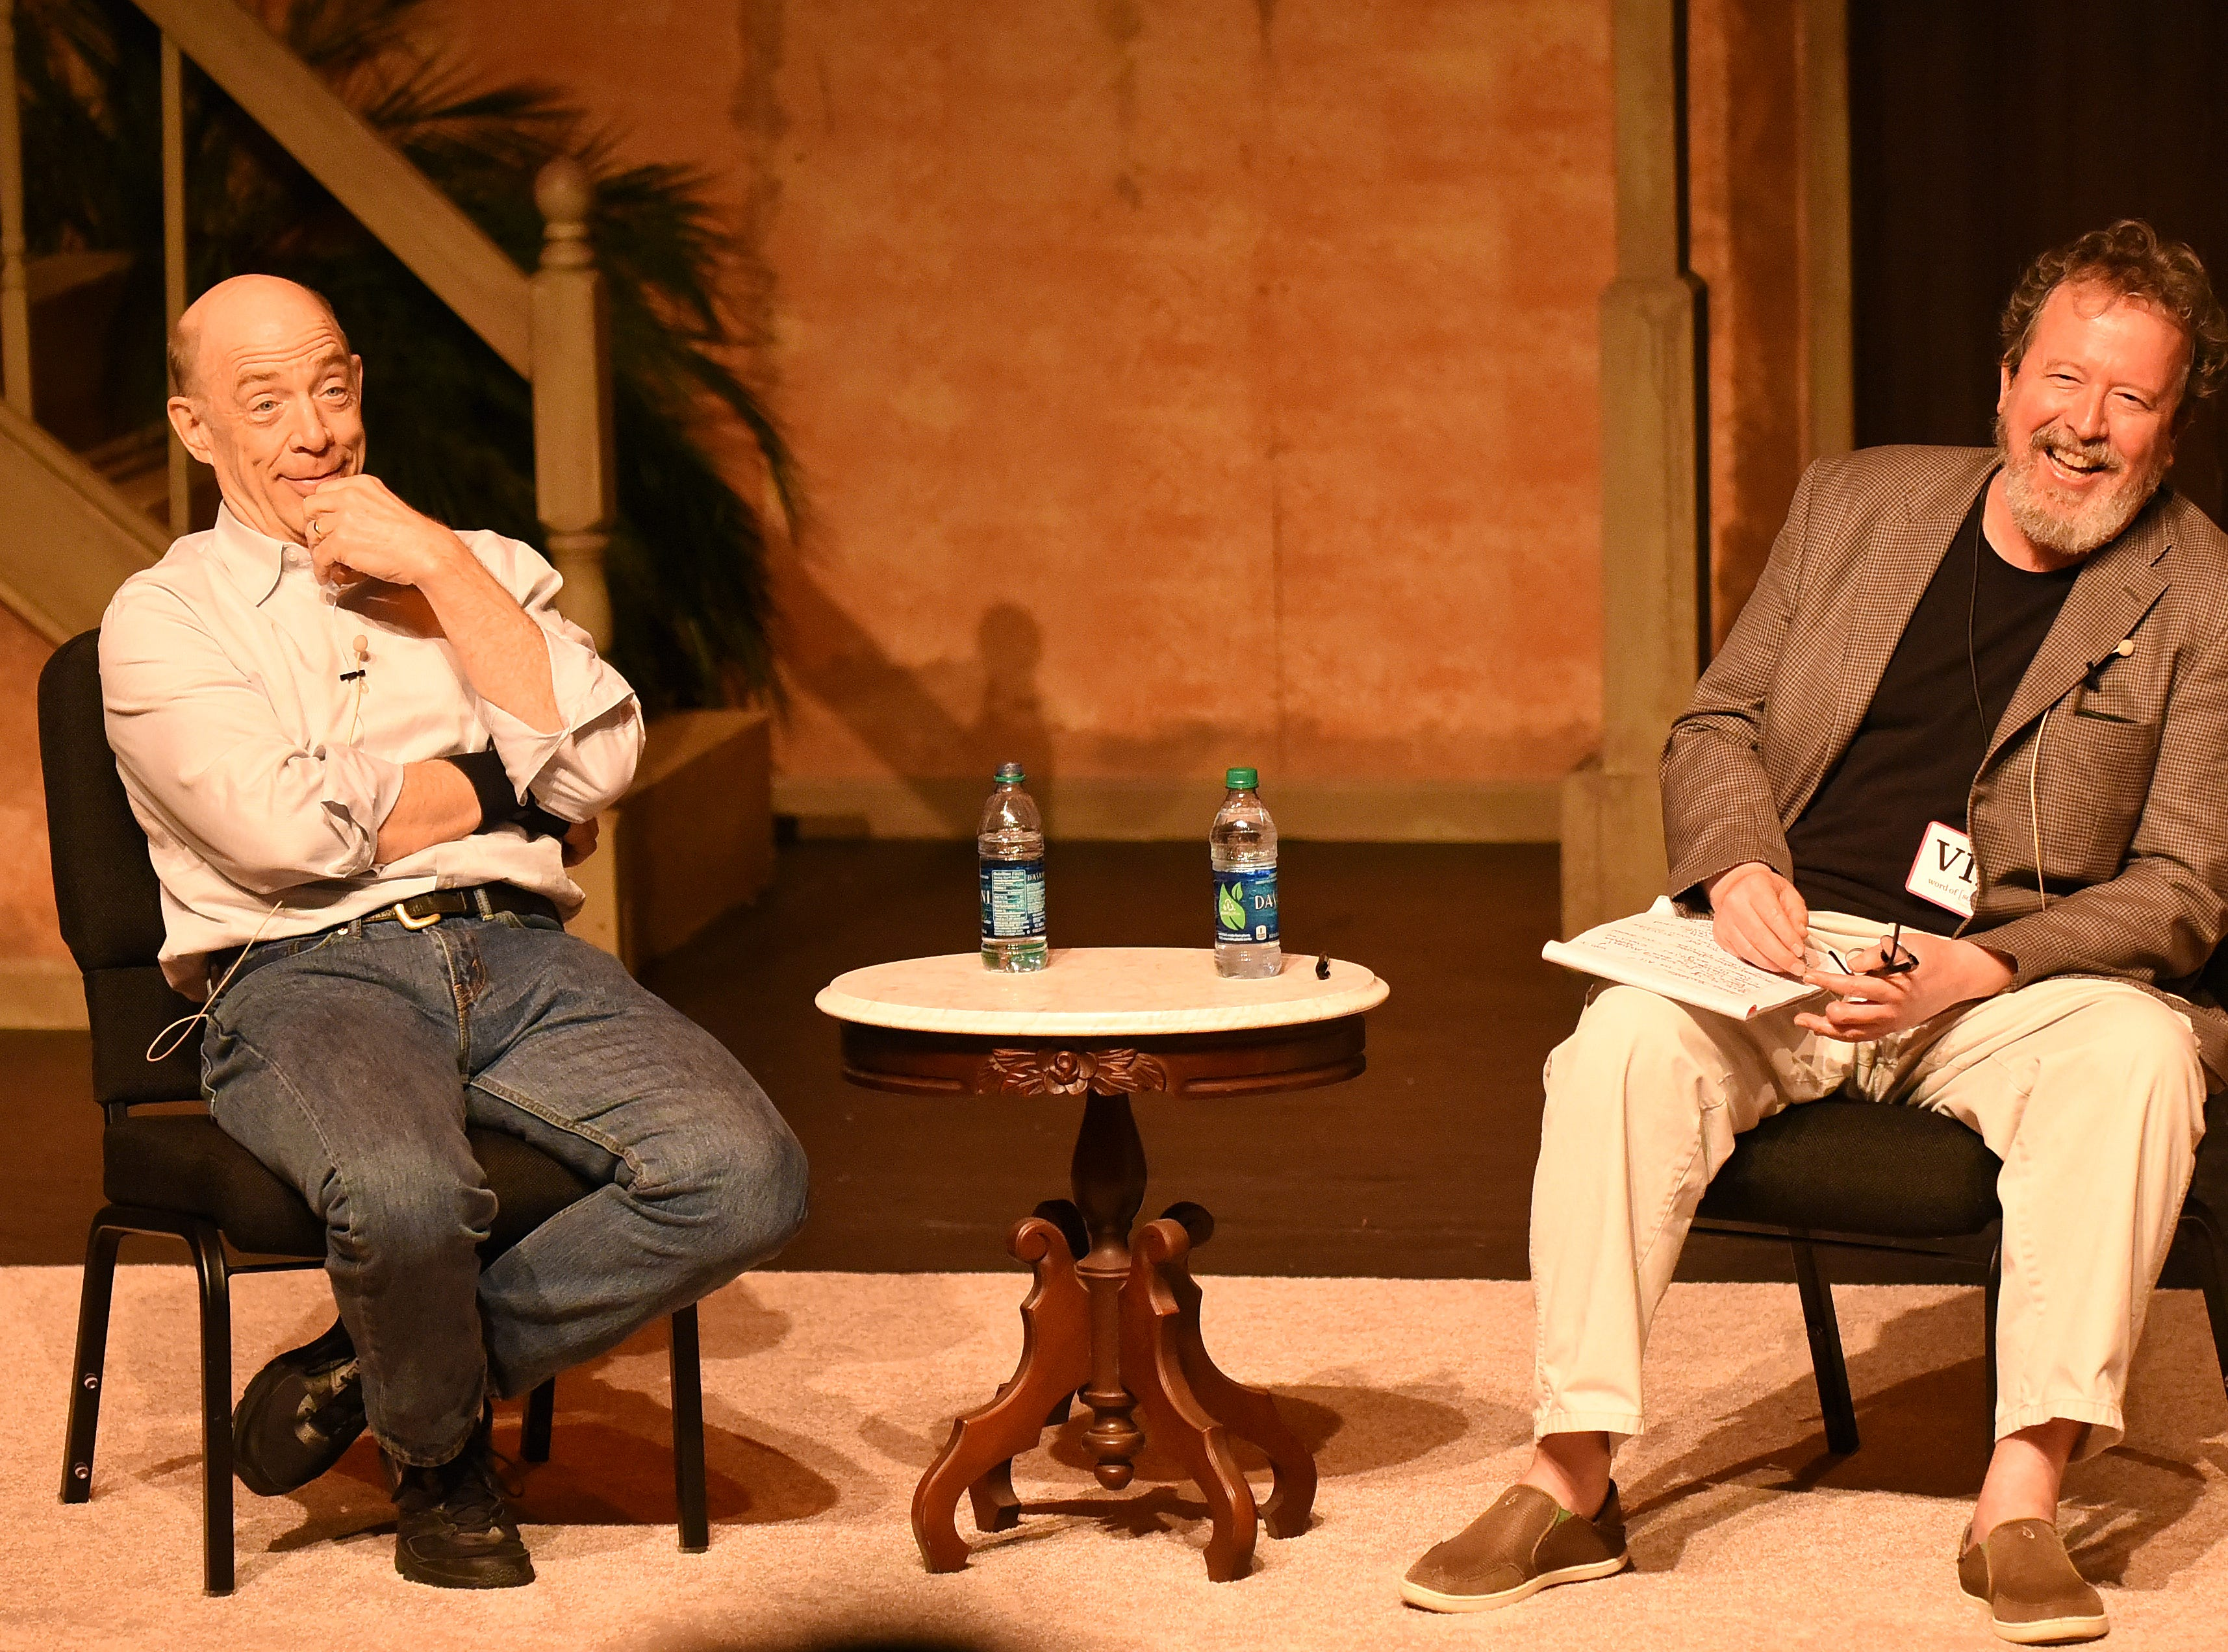 Mark Hinson interviews Oscar winner JK Simmons on stage at Theatre Tallahassee, as a fundraiser for the Symphony, and as part of Word South festival in 2015